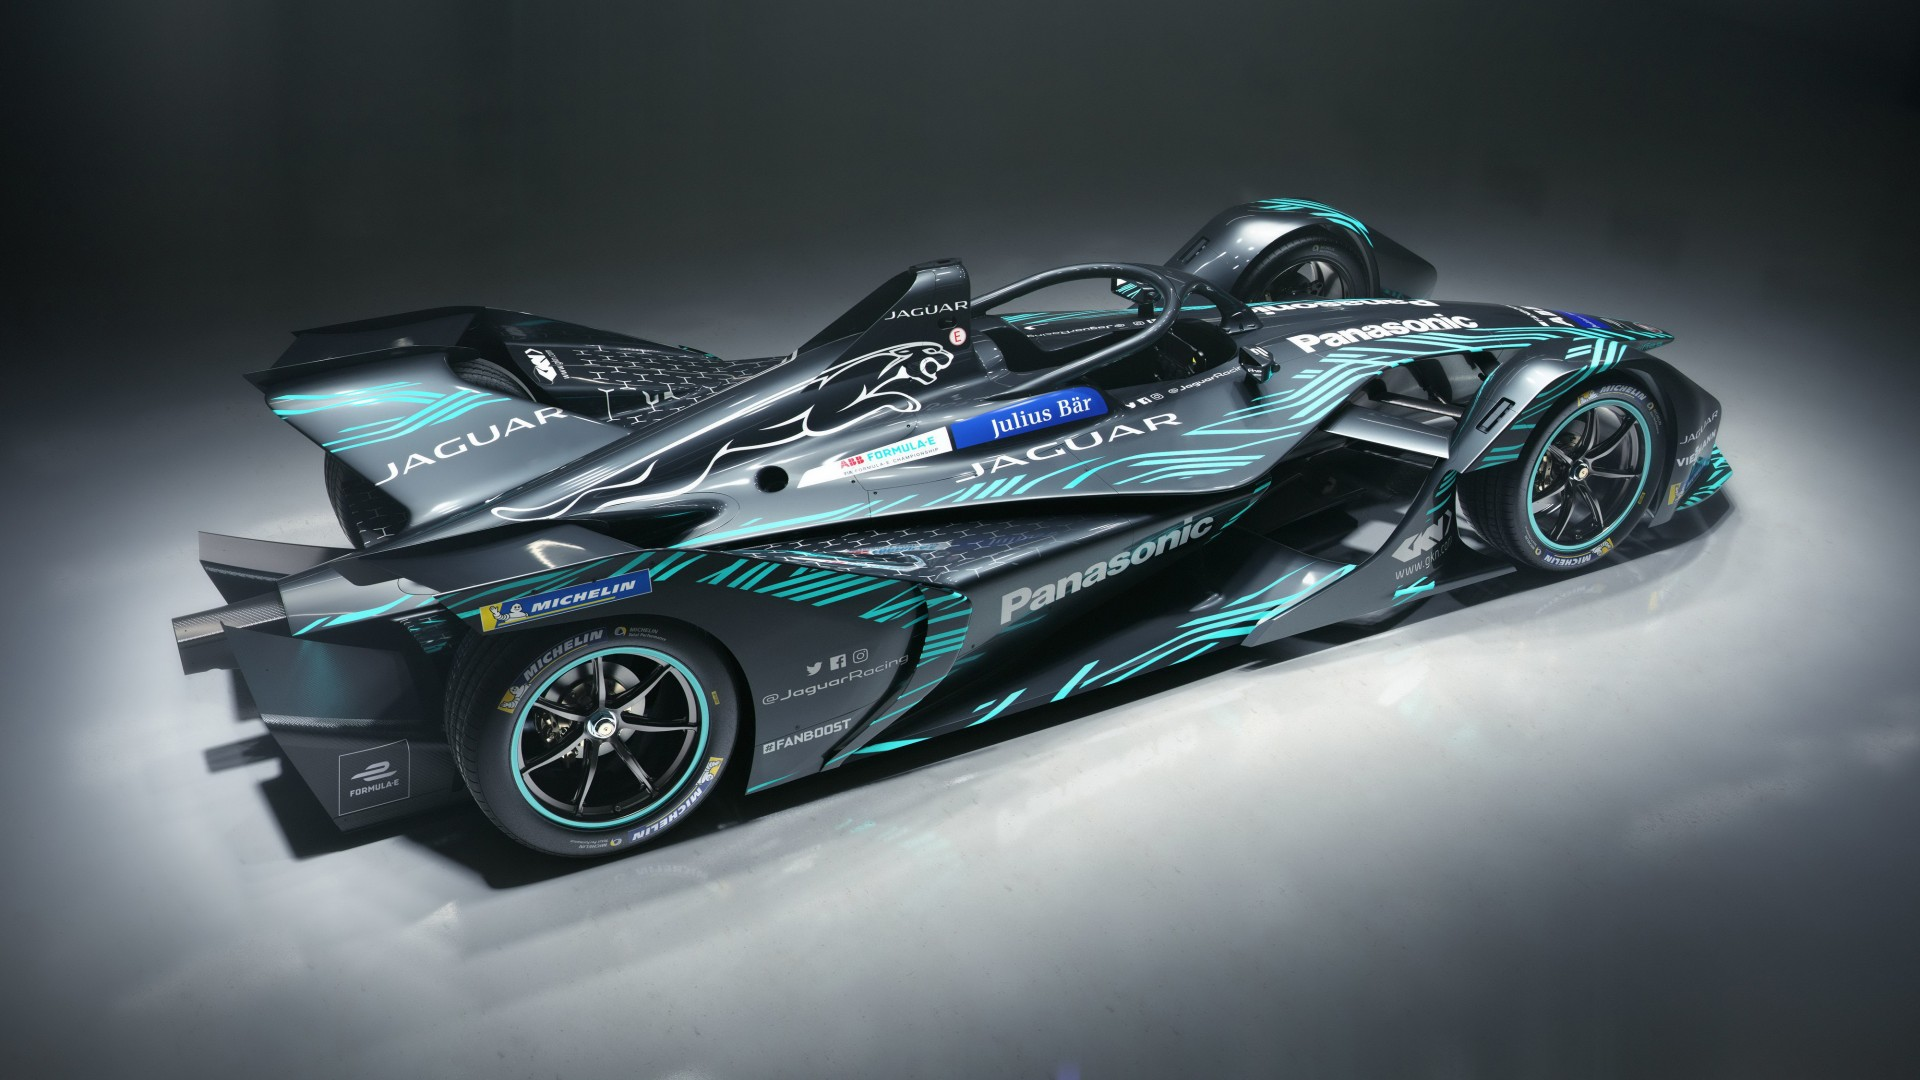 2018 Jaguar I Type Electric Formula E Car 4k 2 Wallpaper